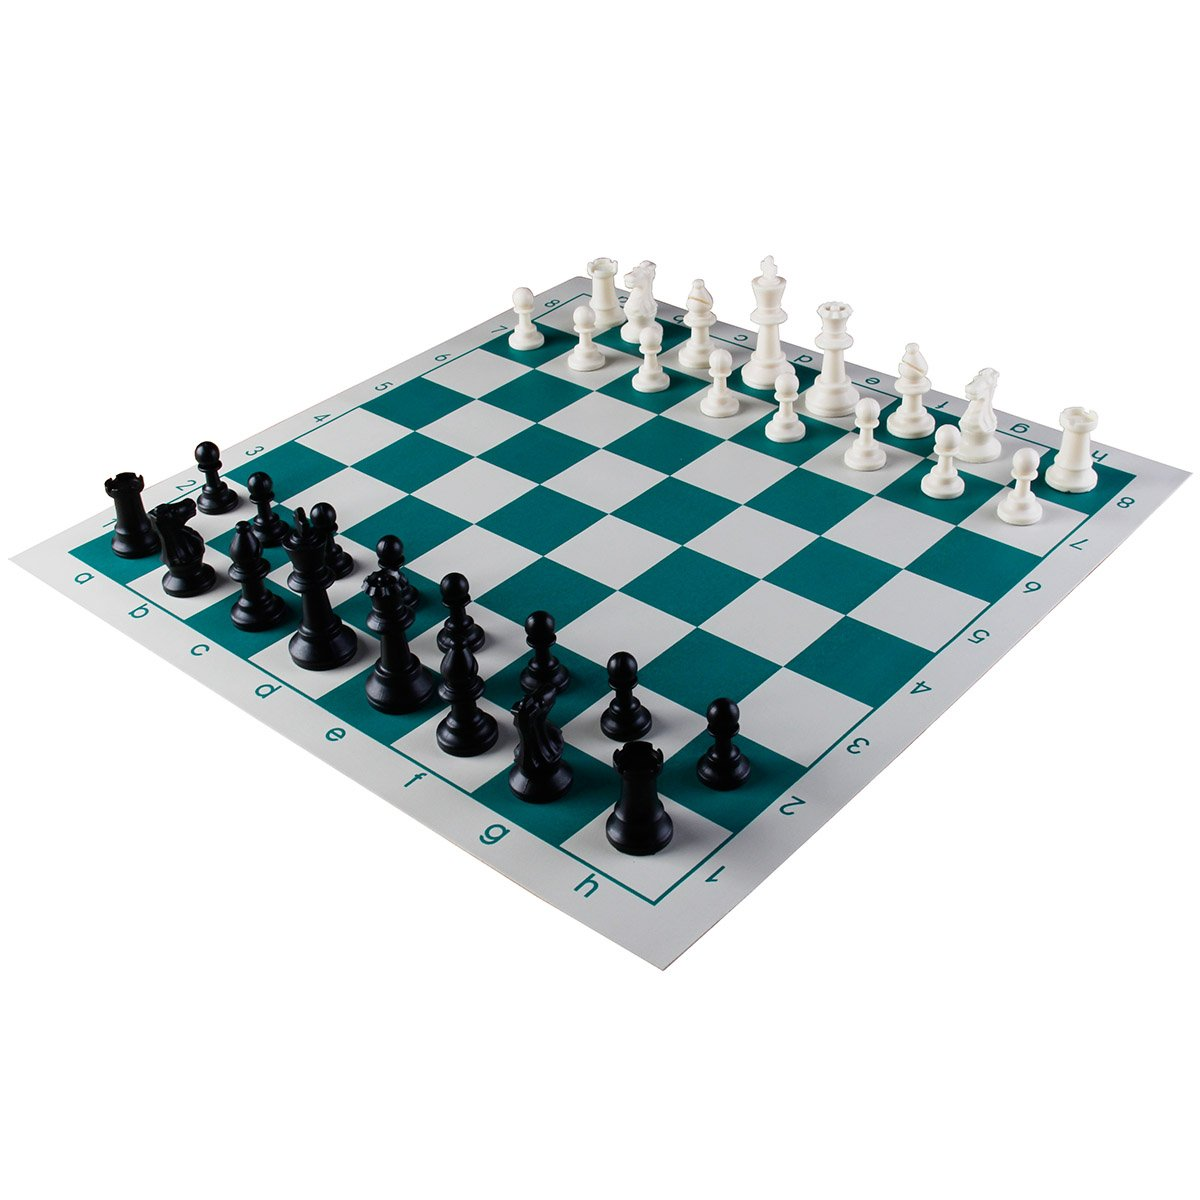 Amerous Chess Set 17'' x 17'' Roll-up Travel Chess in Carry Tube with Shoulder Strap Easy to Carry for Beginner and Kids